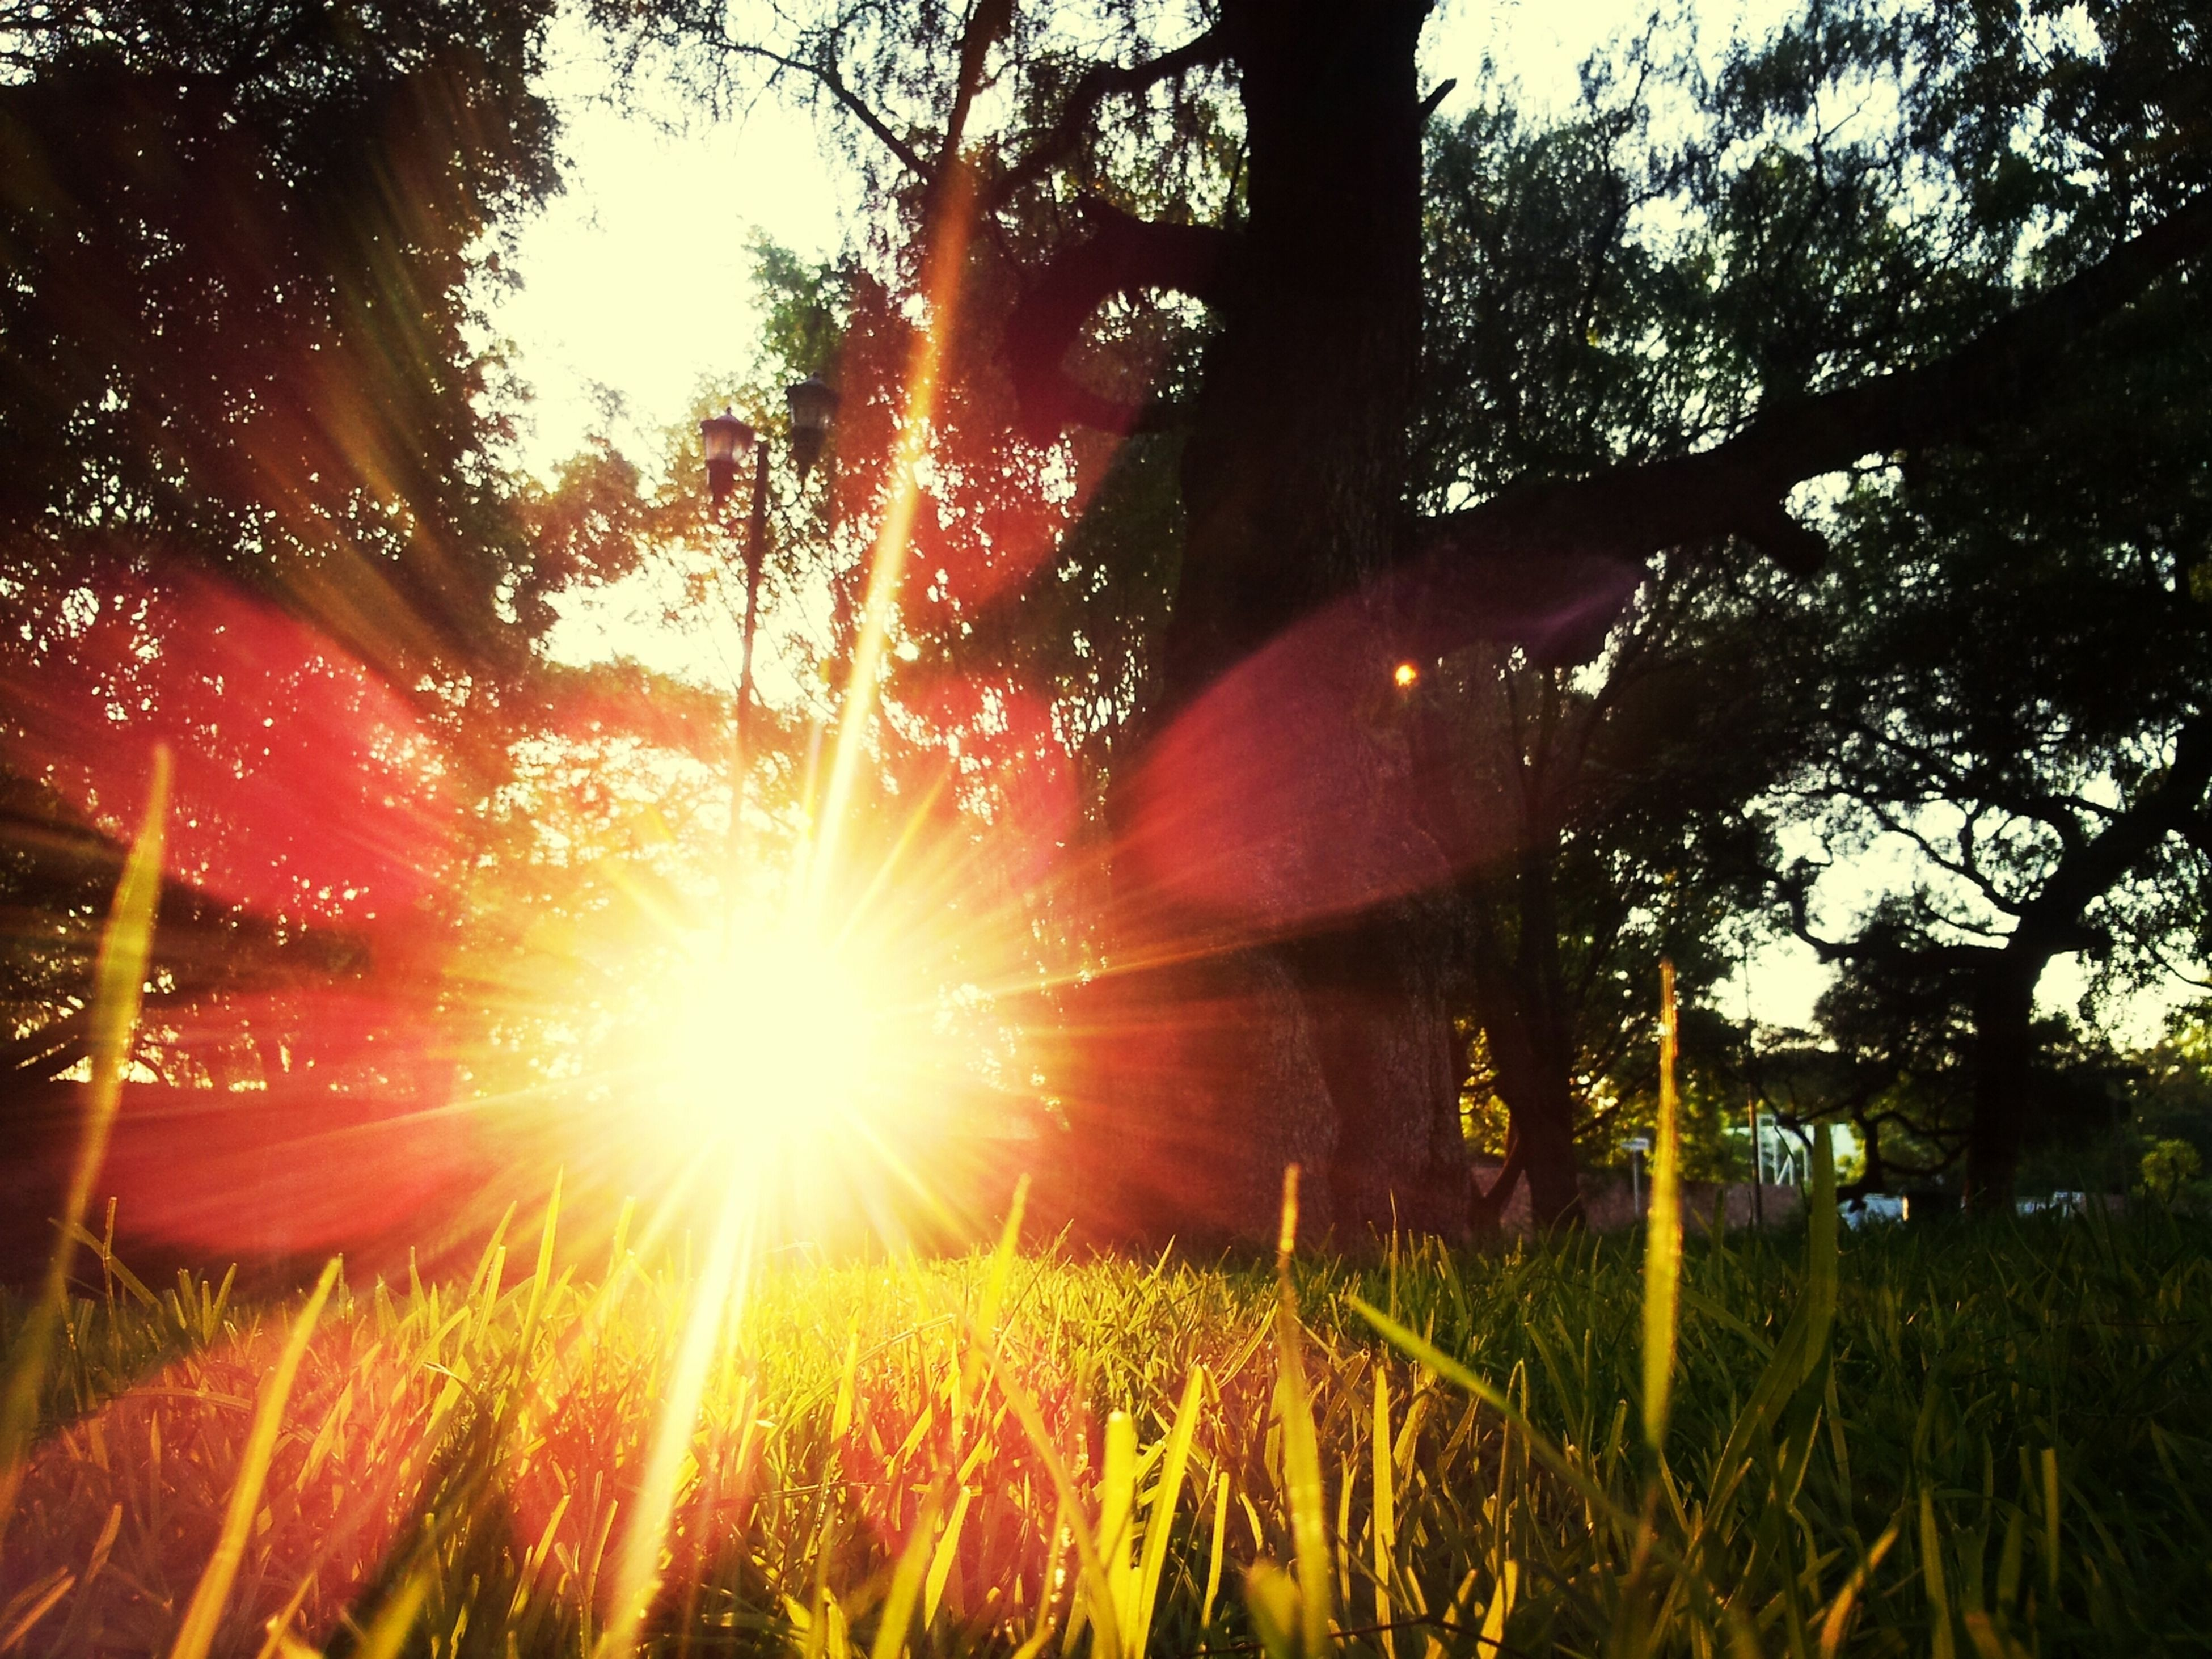 sun, sunbeam, lens flare, sunlight, growth, tree, grass, nature, field, tranquility, beauty in nature, bright, sunset, back lit, plant, sunny, tranquil scene, outdoors, sky, clear sky